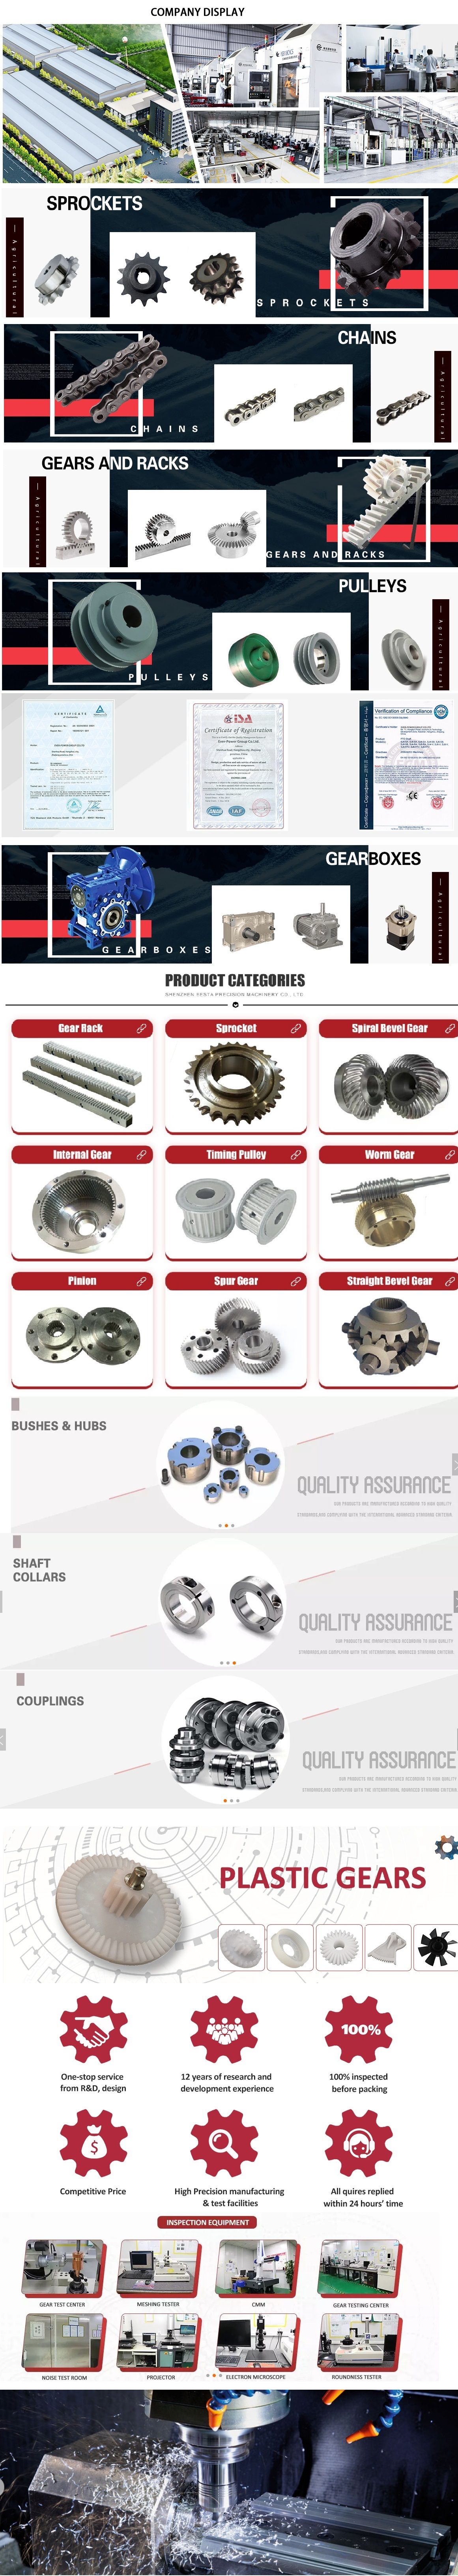 in Likasi Democratic Republic of the Congo  sales   price   shop   near me   near me shop   factory   supplier Inline Shaft R77 Series Helical Gear Reducer manufacturer   best   Cost   Custom   Cheap   wholesaler